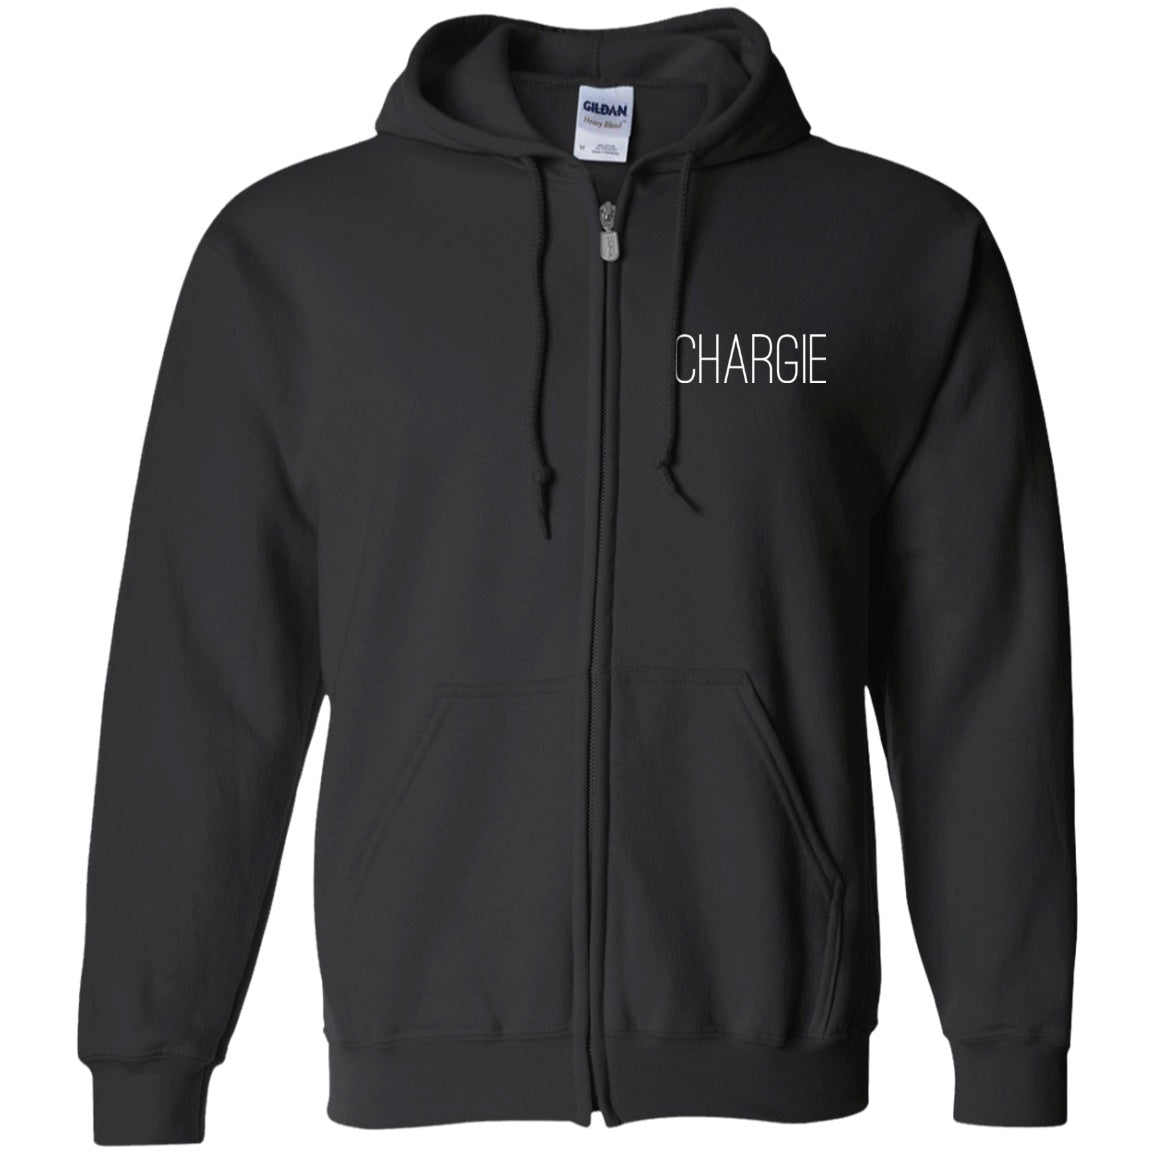 Iconic Chargie Zip Up Hooded Sweatshirt - The Unchargeables